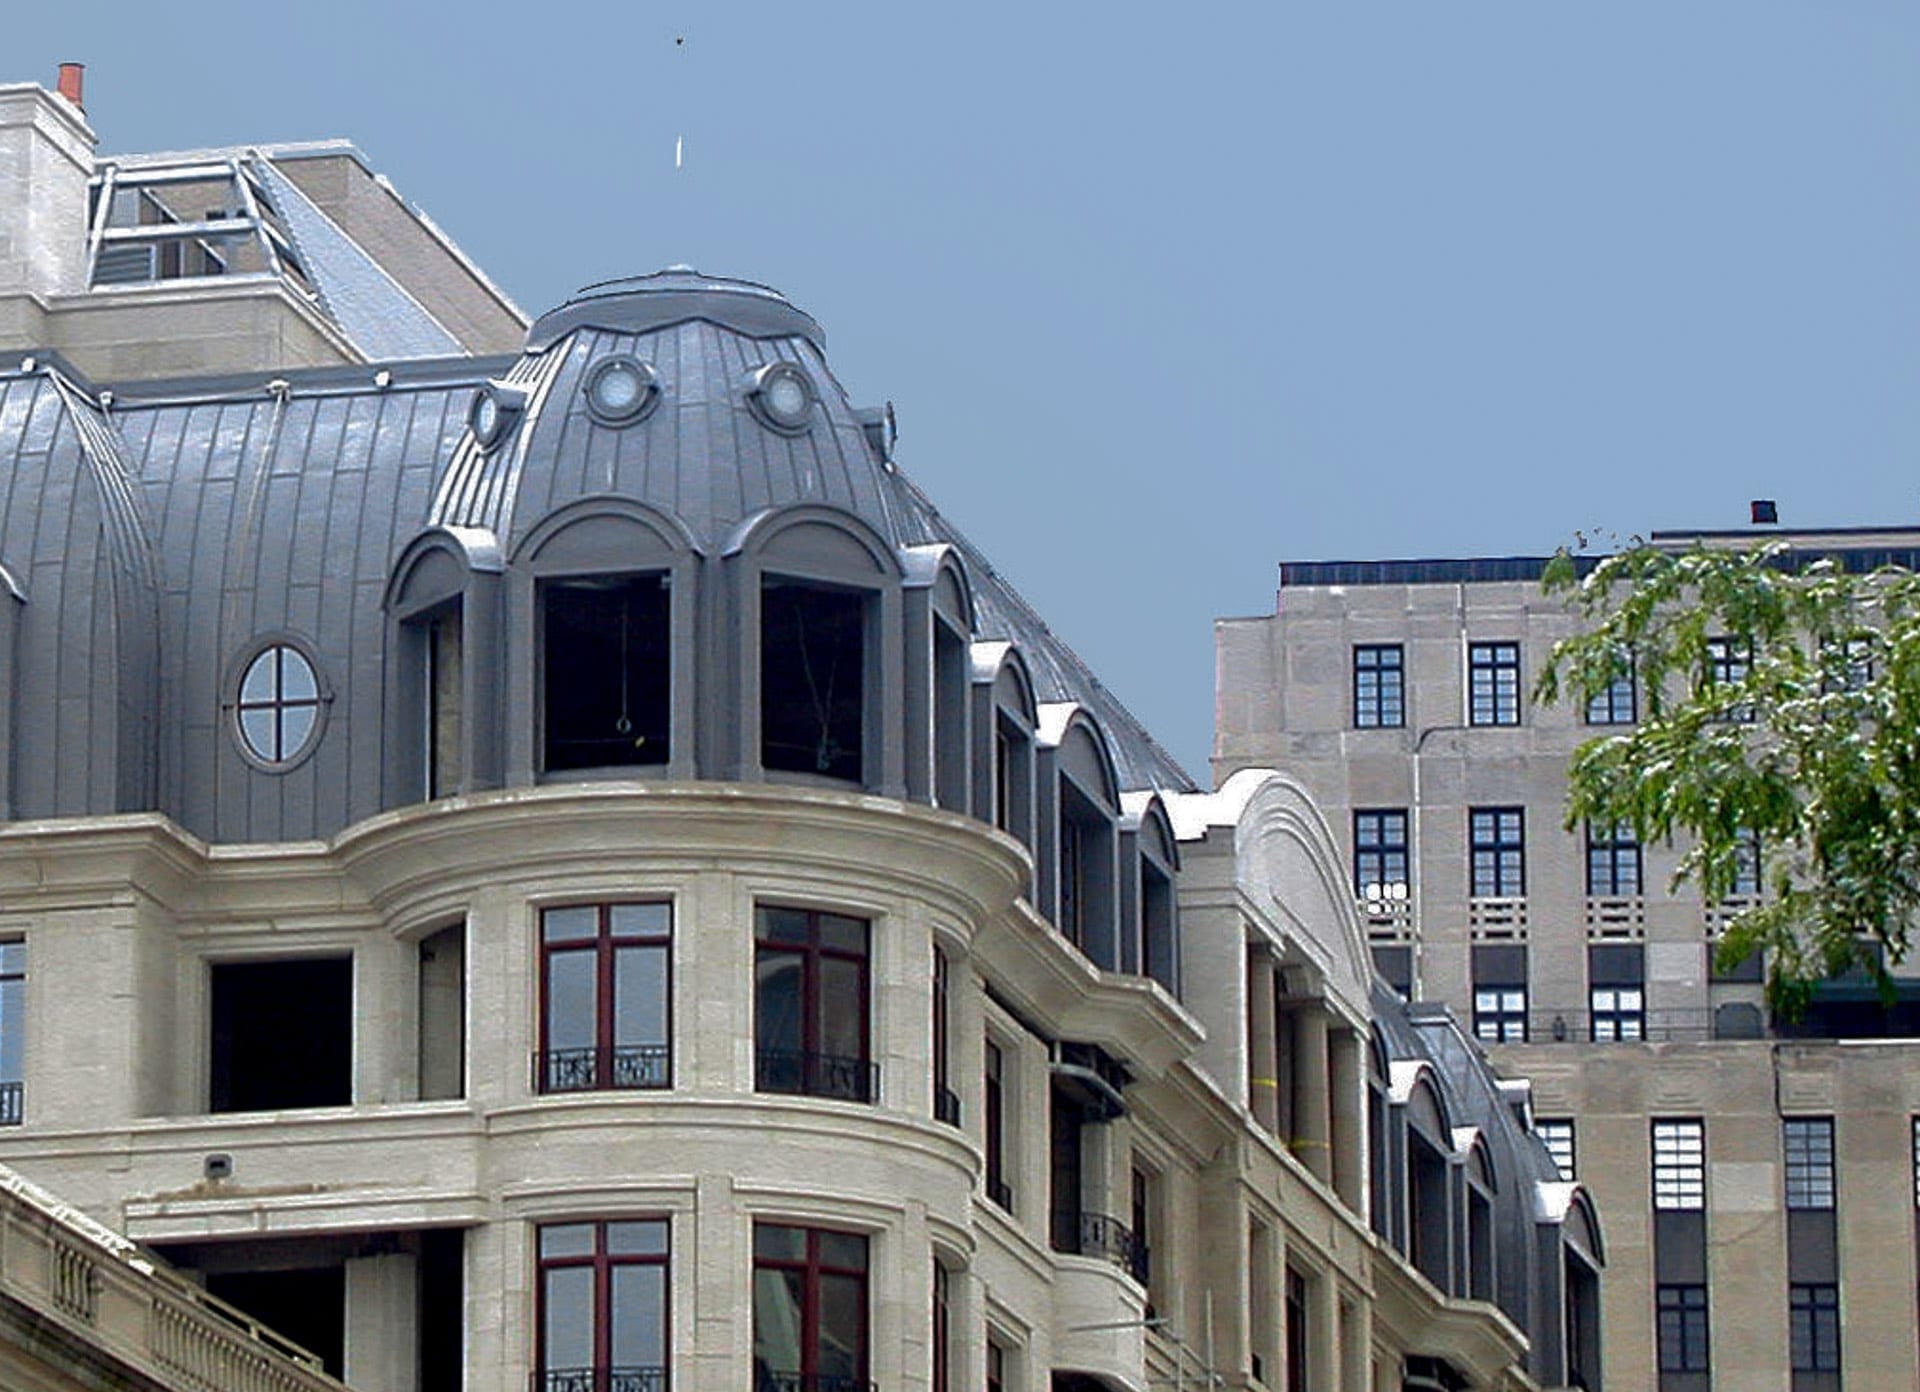 The Lucien Lagrange-designed 65 E. Goethe Building with Zinc Roof, an example of how traditions in architecture can benefit from modern scale fabrication and engineering technologies.